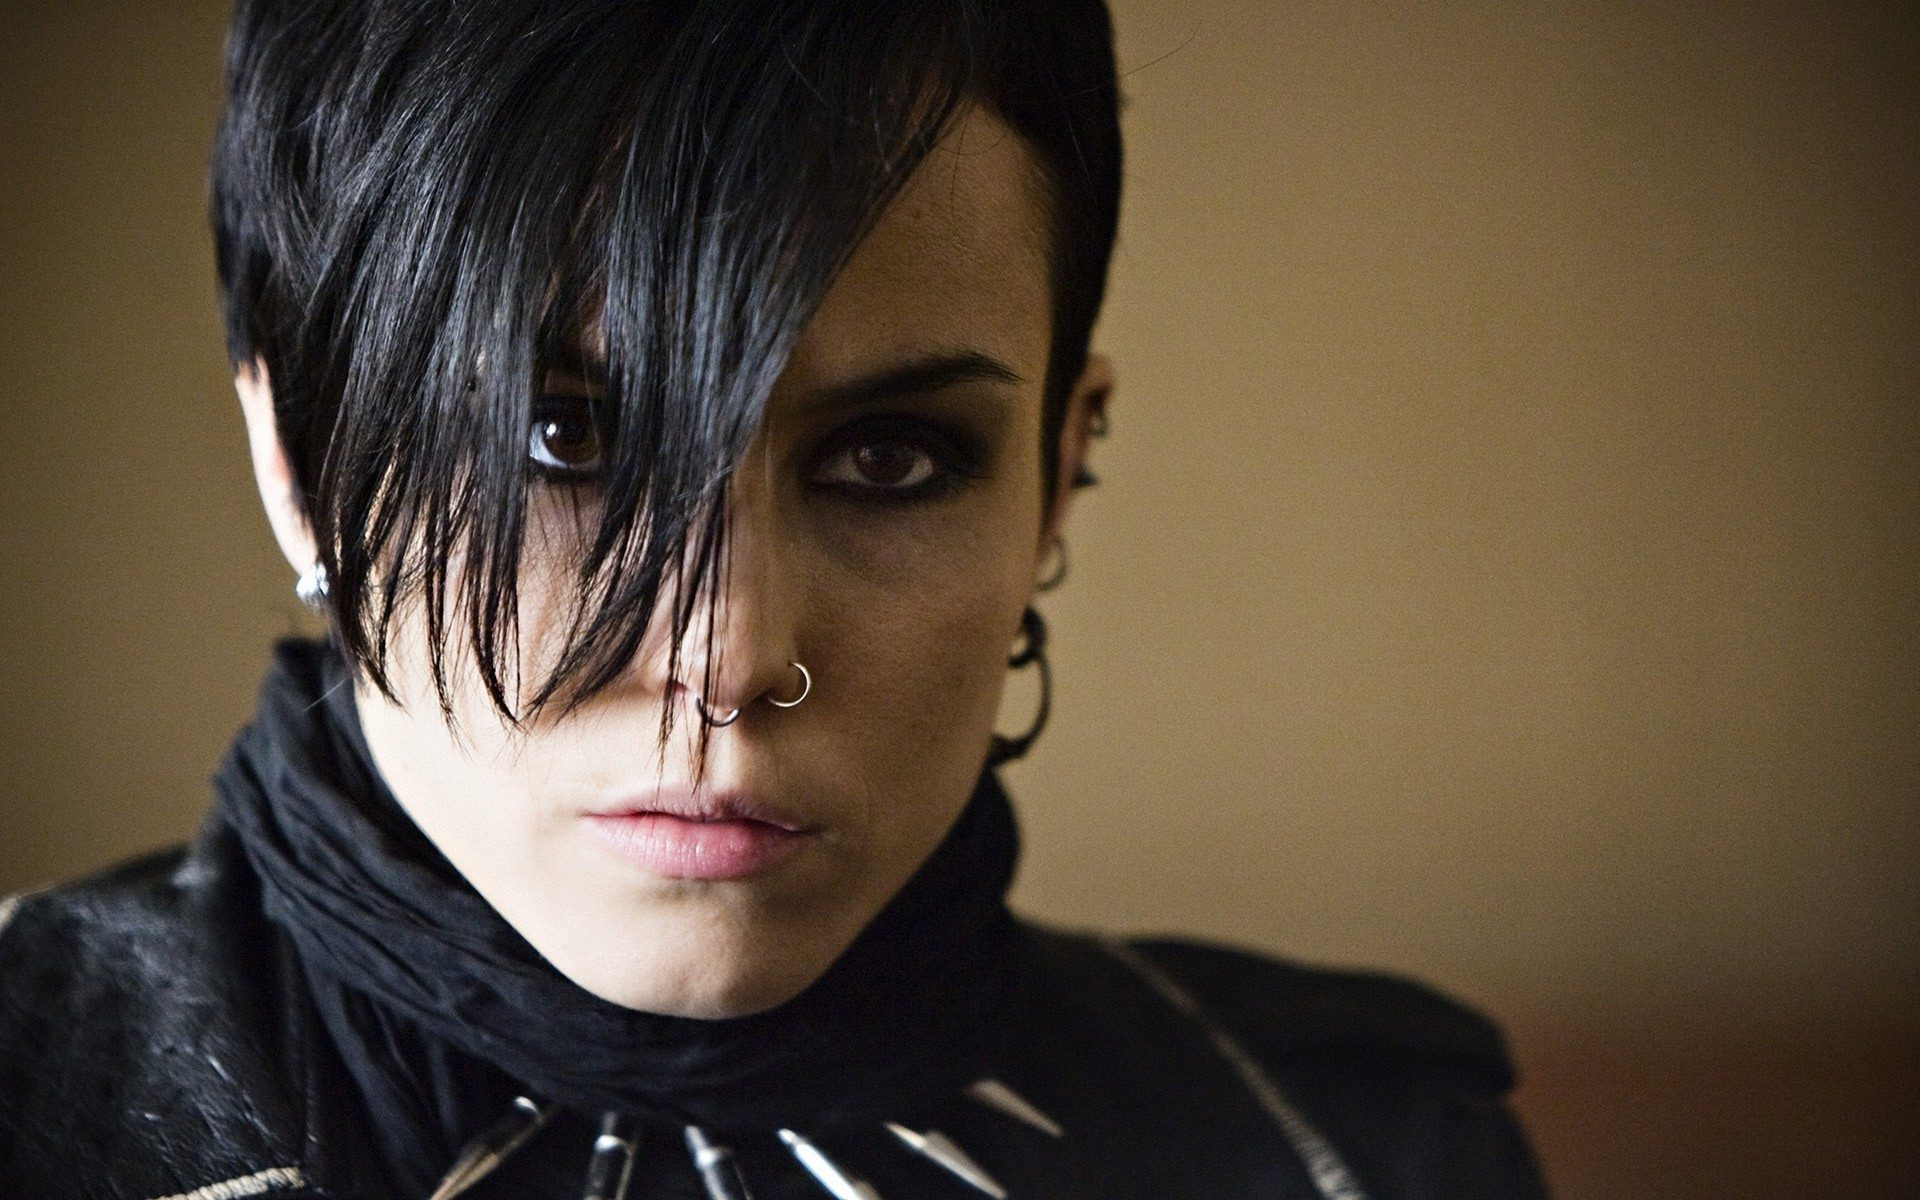 A Look Into Lisbeth Salander And The Girl With The Dragon Tattoo